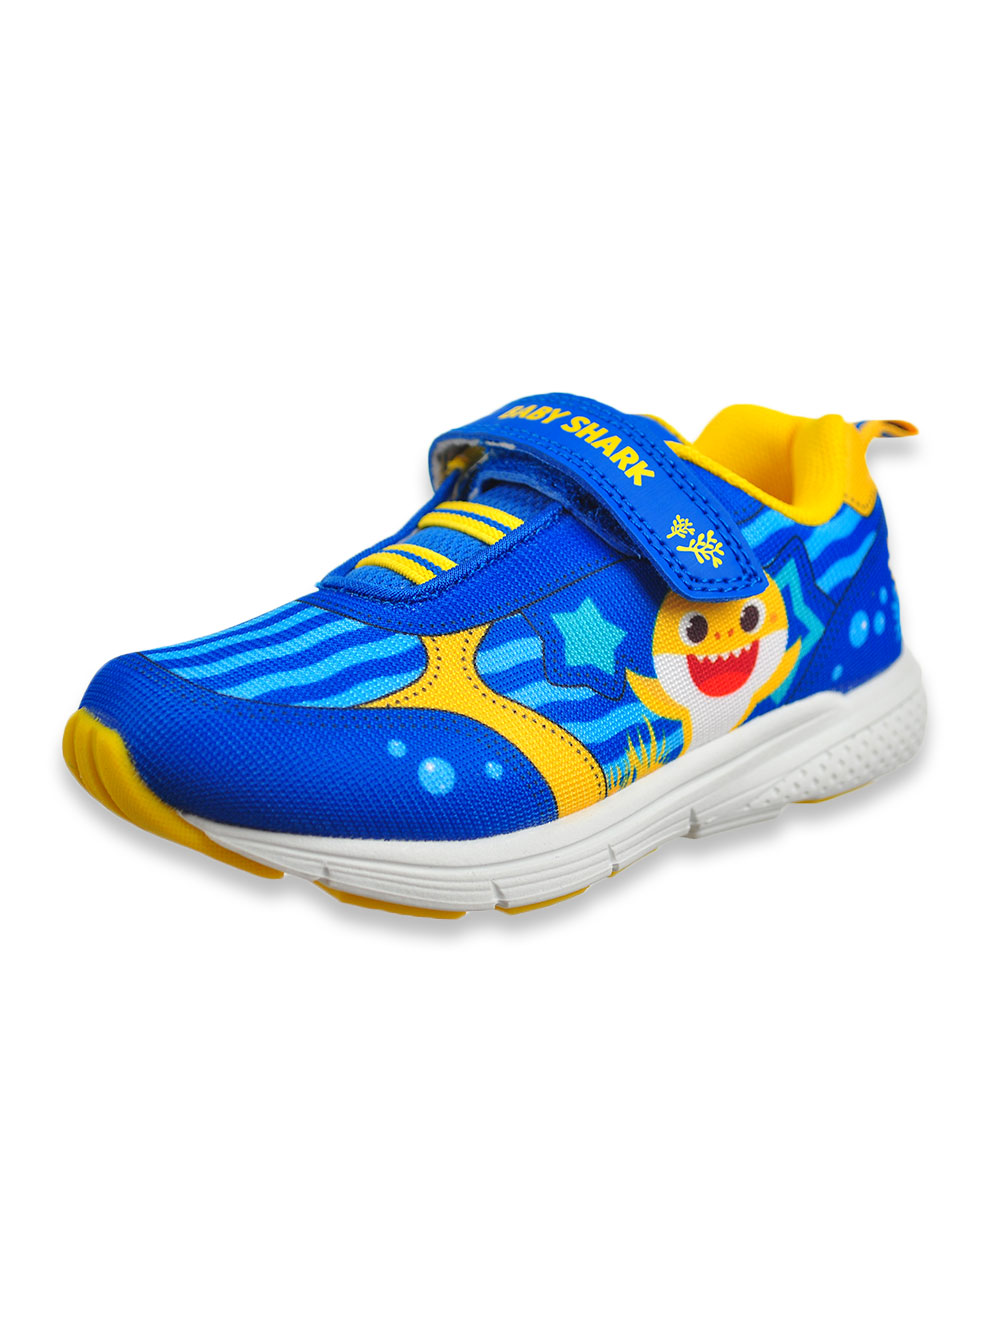 Boys' Strap Running Sneakers